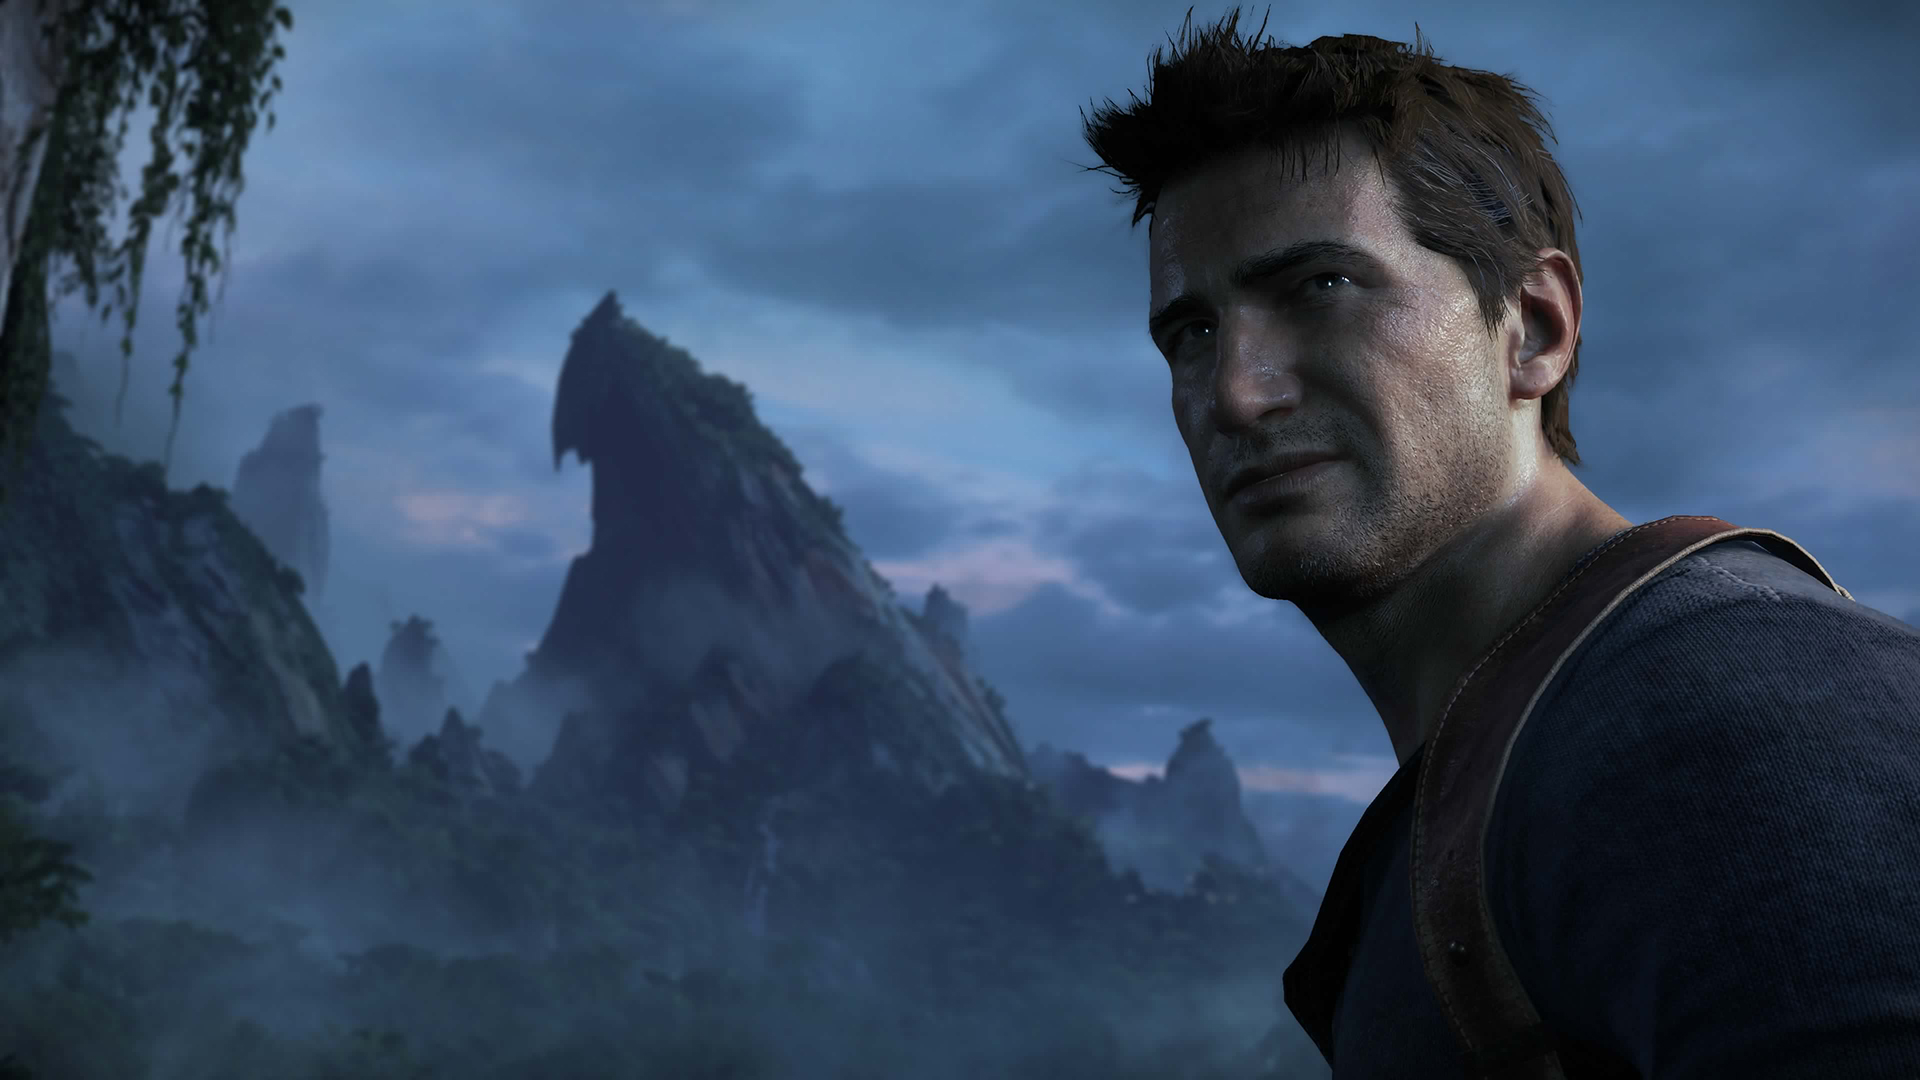 Uncharted 4 Steelbook Edition Revealed By Amazon Germany